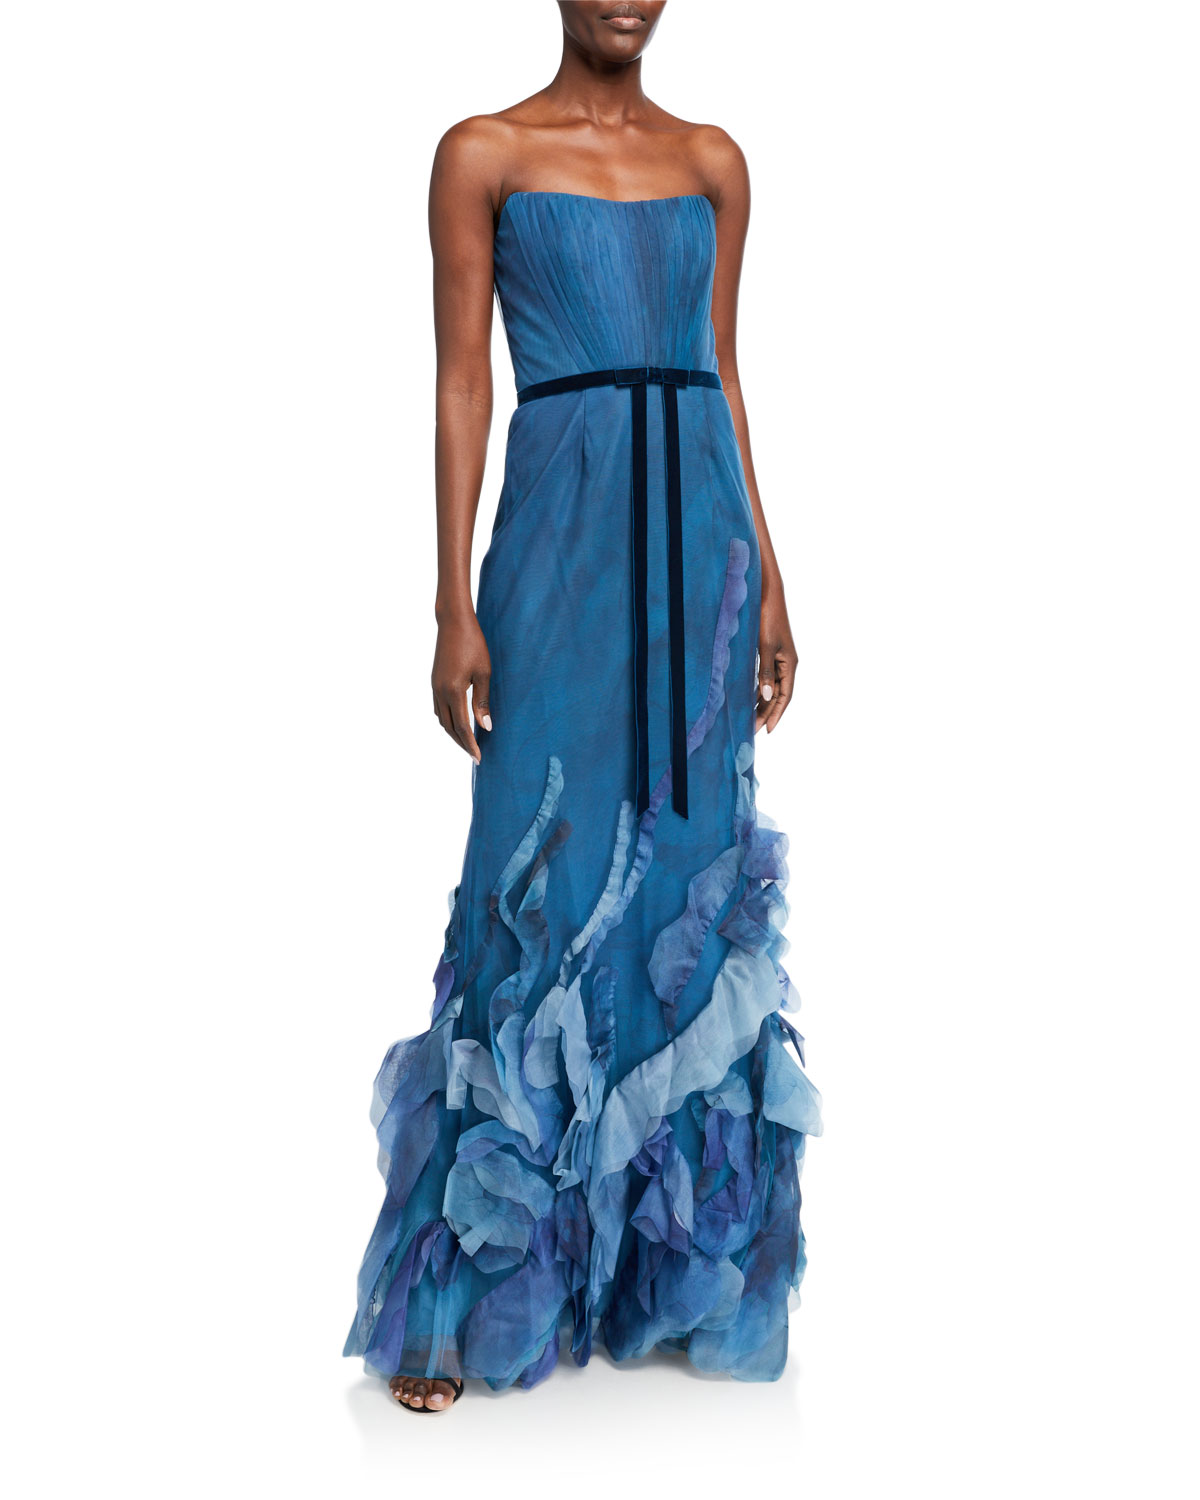 MARCHESA NOTTE STRAPLESS PRINTED TULLE TEXTURED GOWN